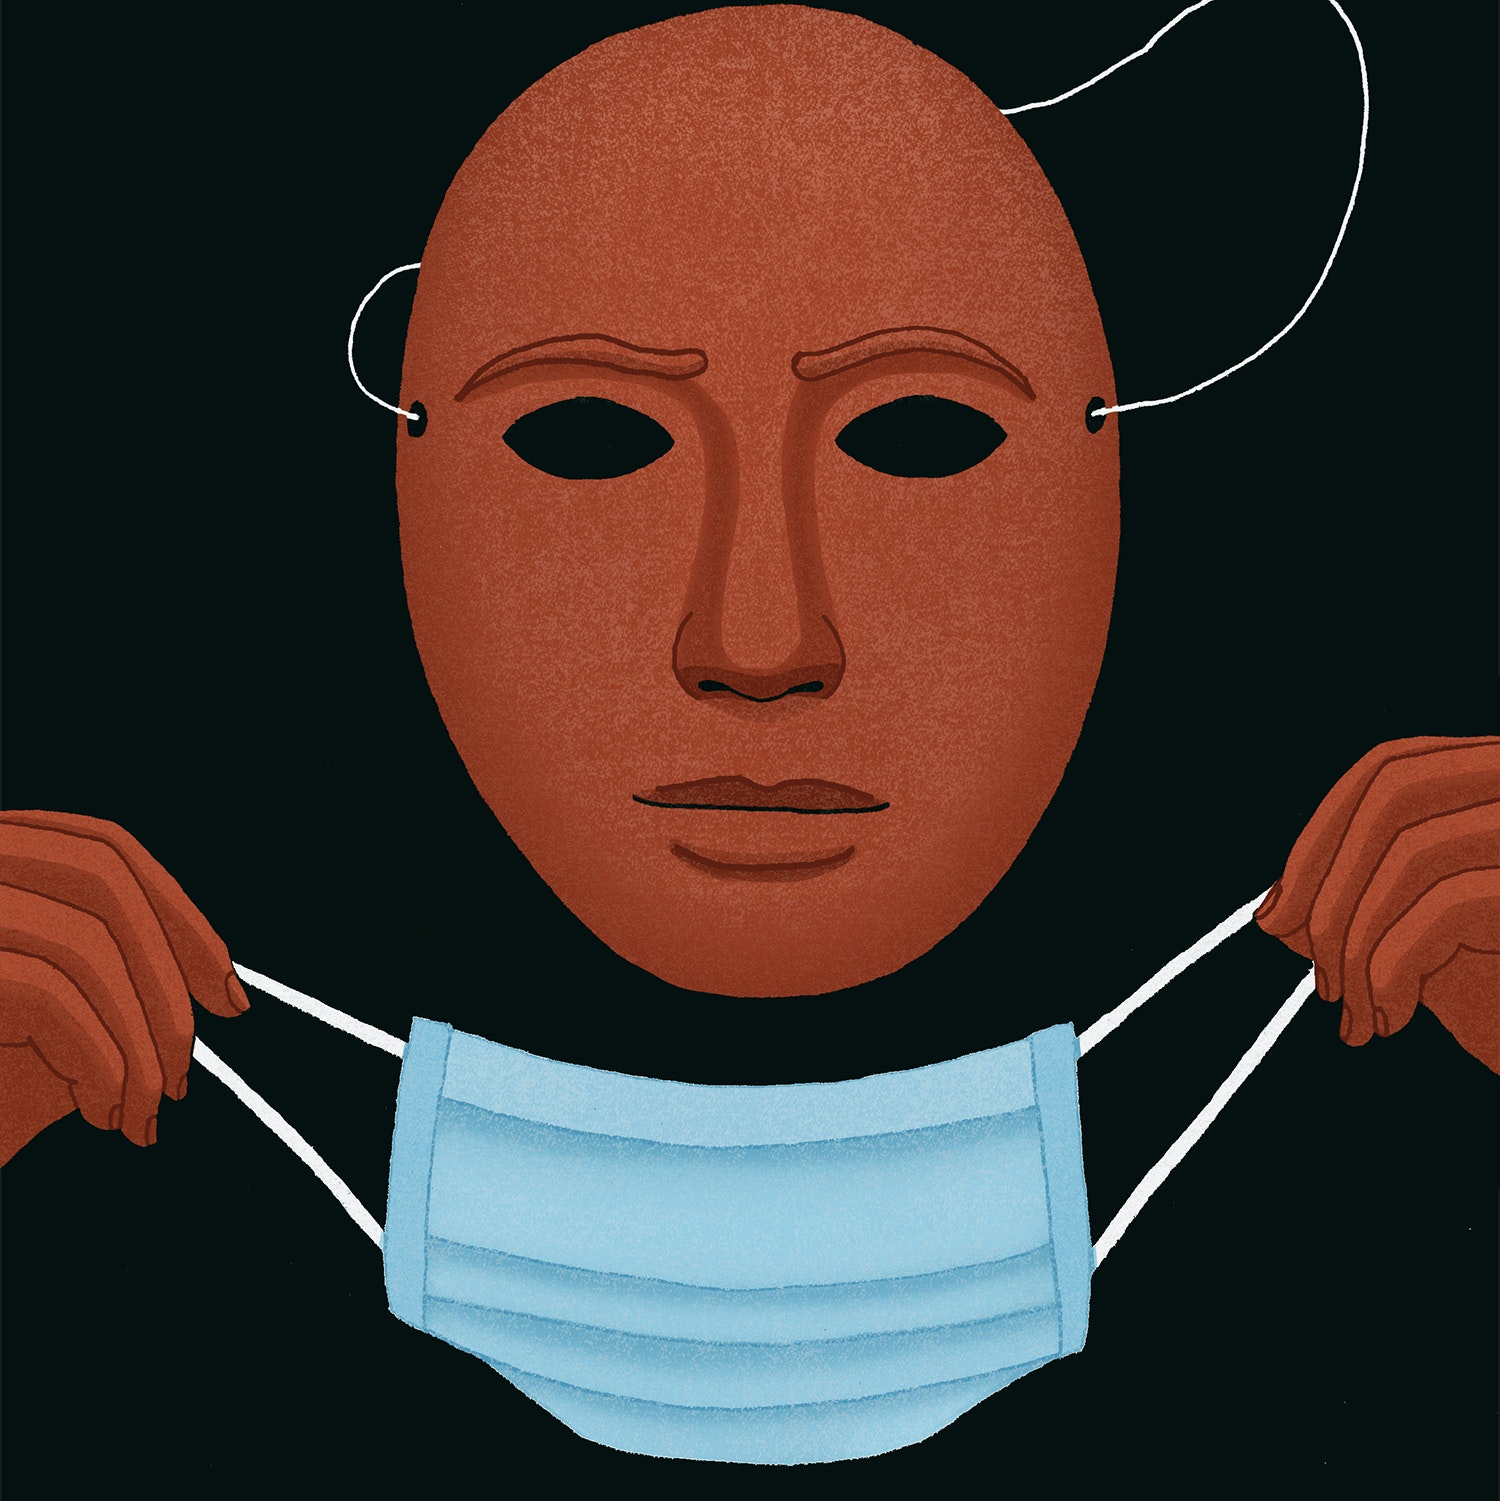 Illustration of putting a mask on one's face